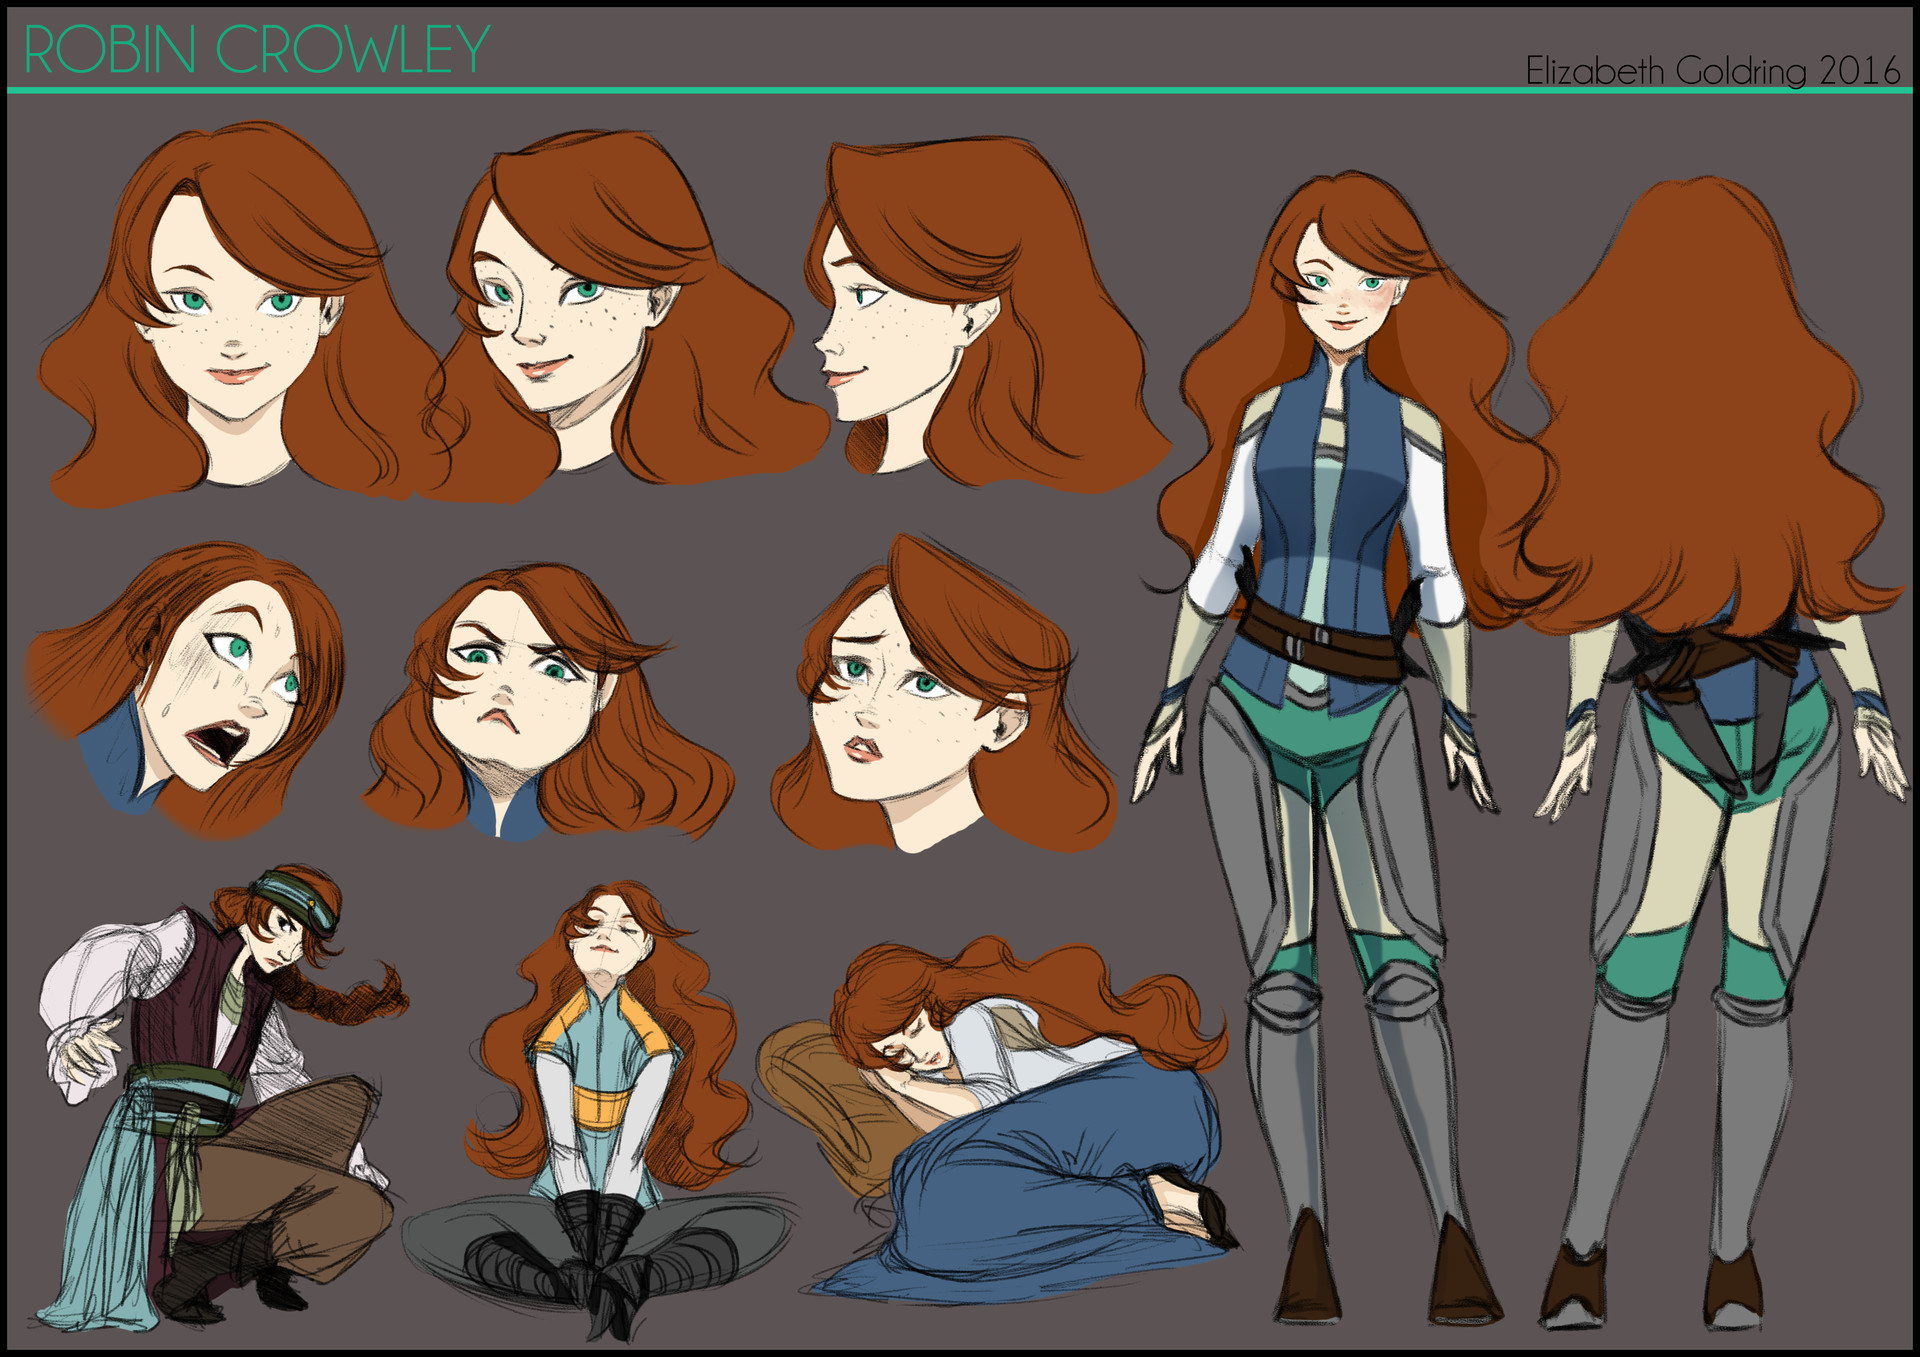 Elizabeth goldring robin chara sheet color